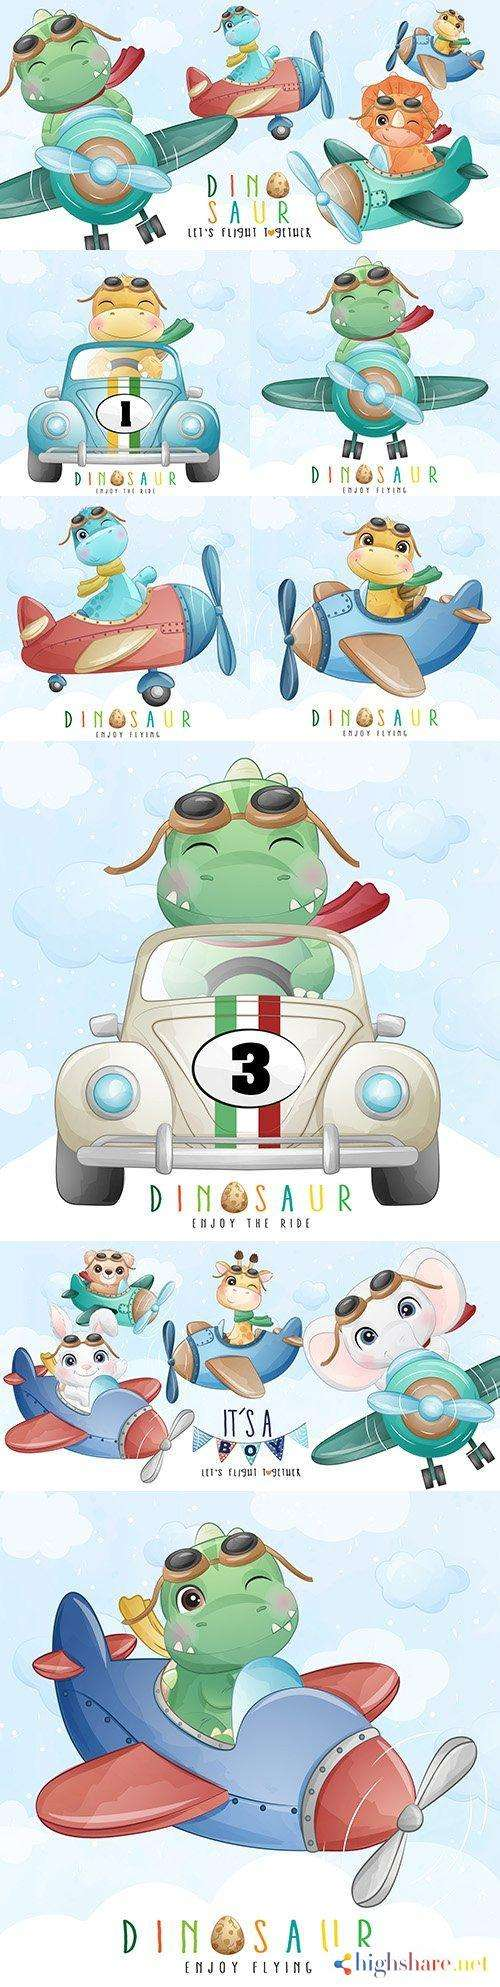 dinosaur by car and airplane watercolor illustrations 5f412ee6738cb - Dinosaur by car and airplane watercolor illustrations